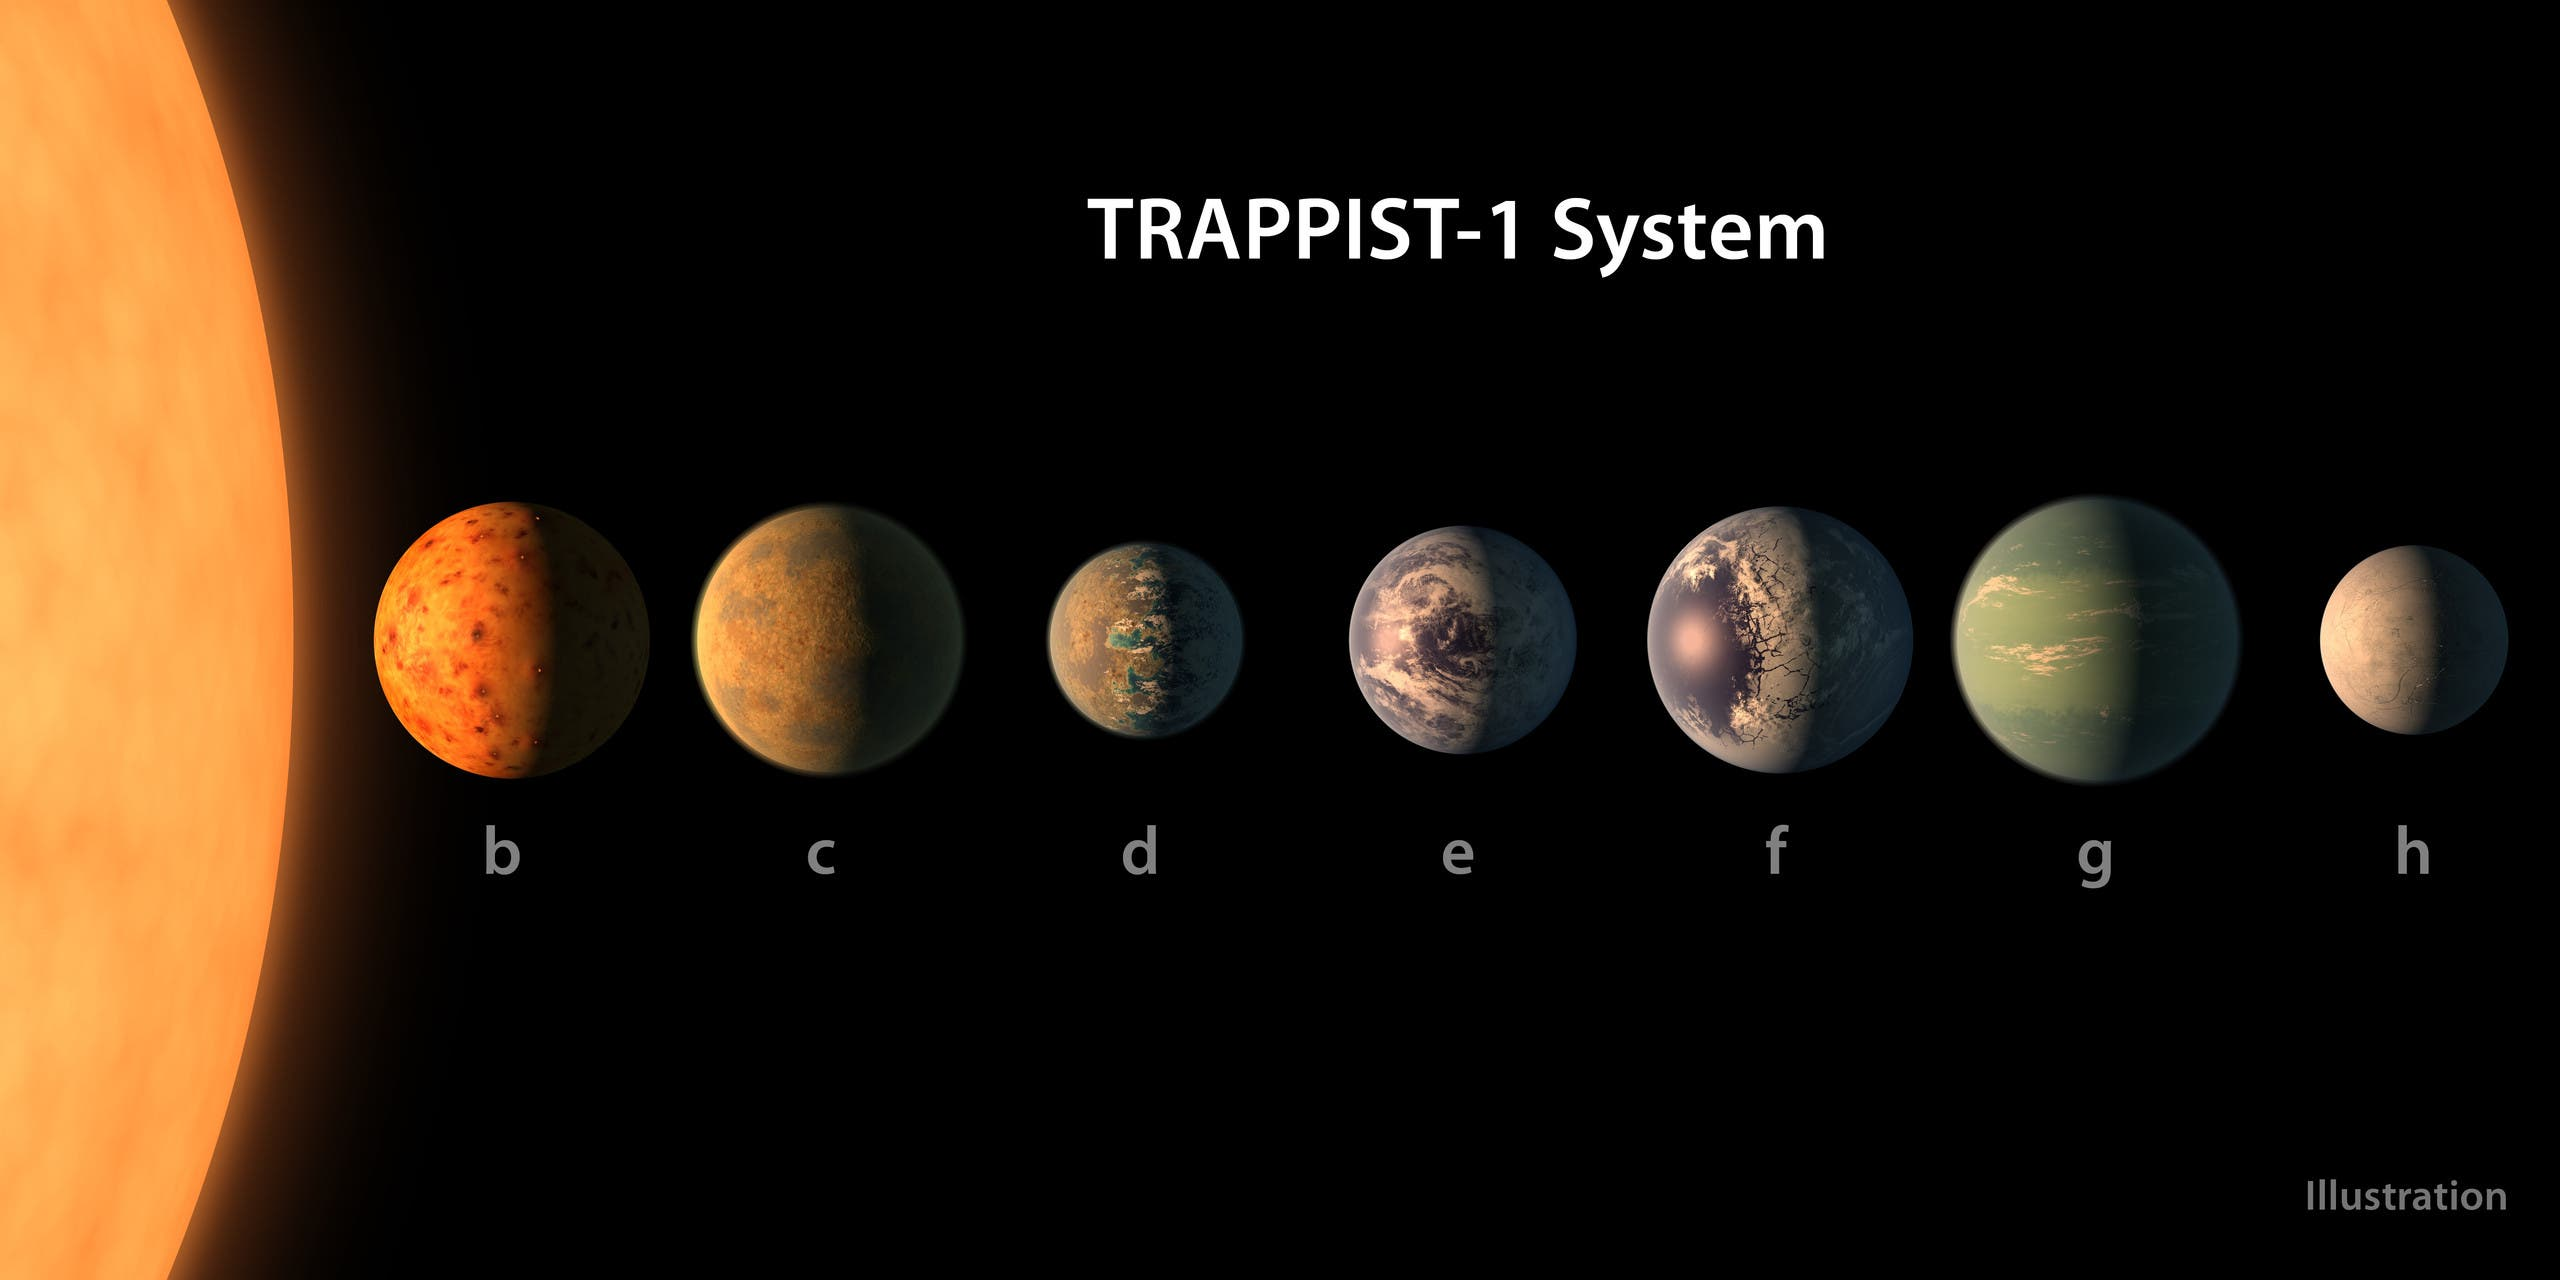 This handout artist's conception released by the European Southern Observatory on February 22, 2017 shows a size comparison of the planets of the TRAPPIST-1 system, lined up in order of increasing distance from their host star. (AFP)